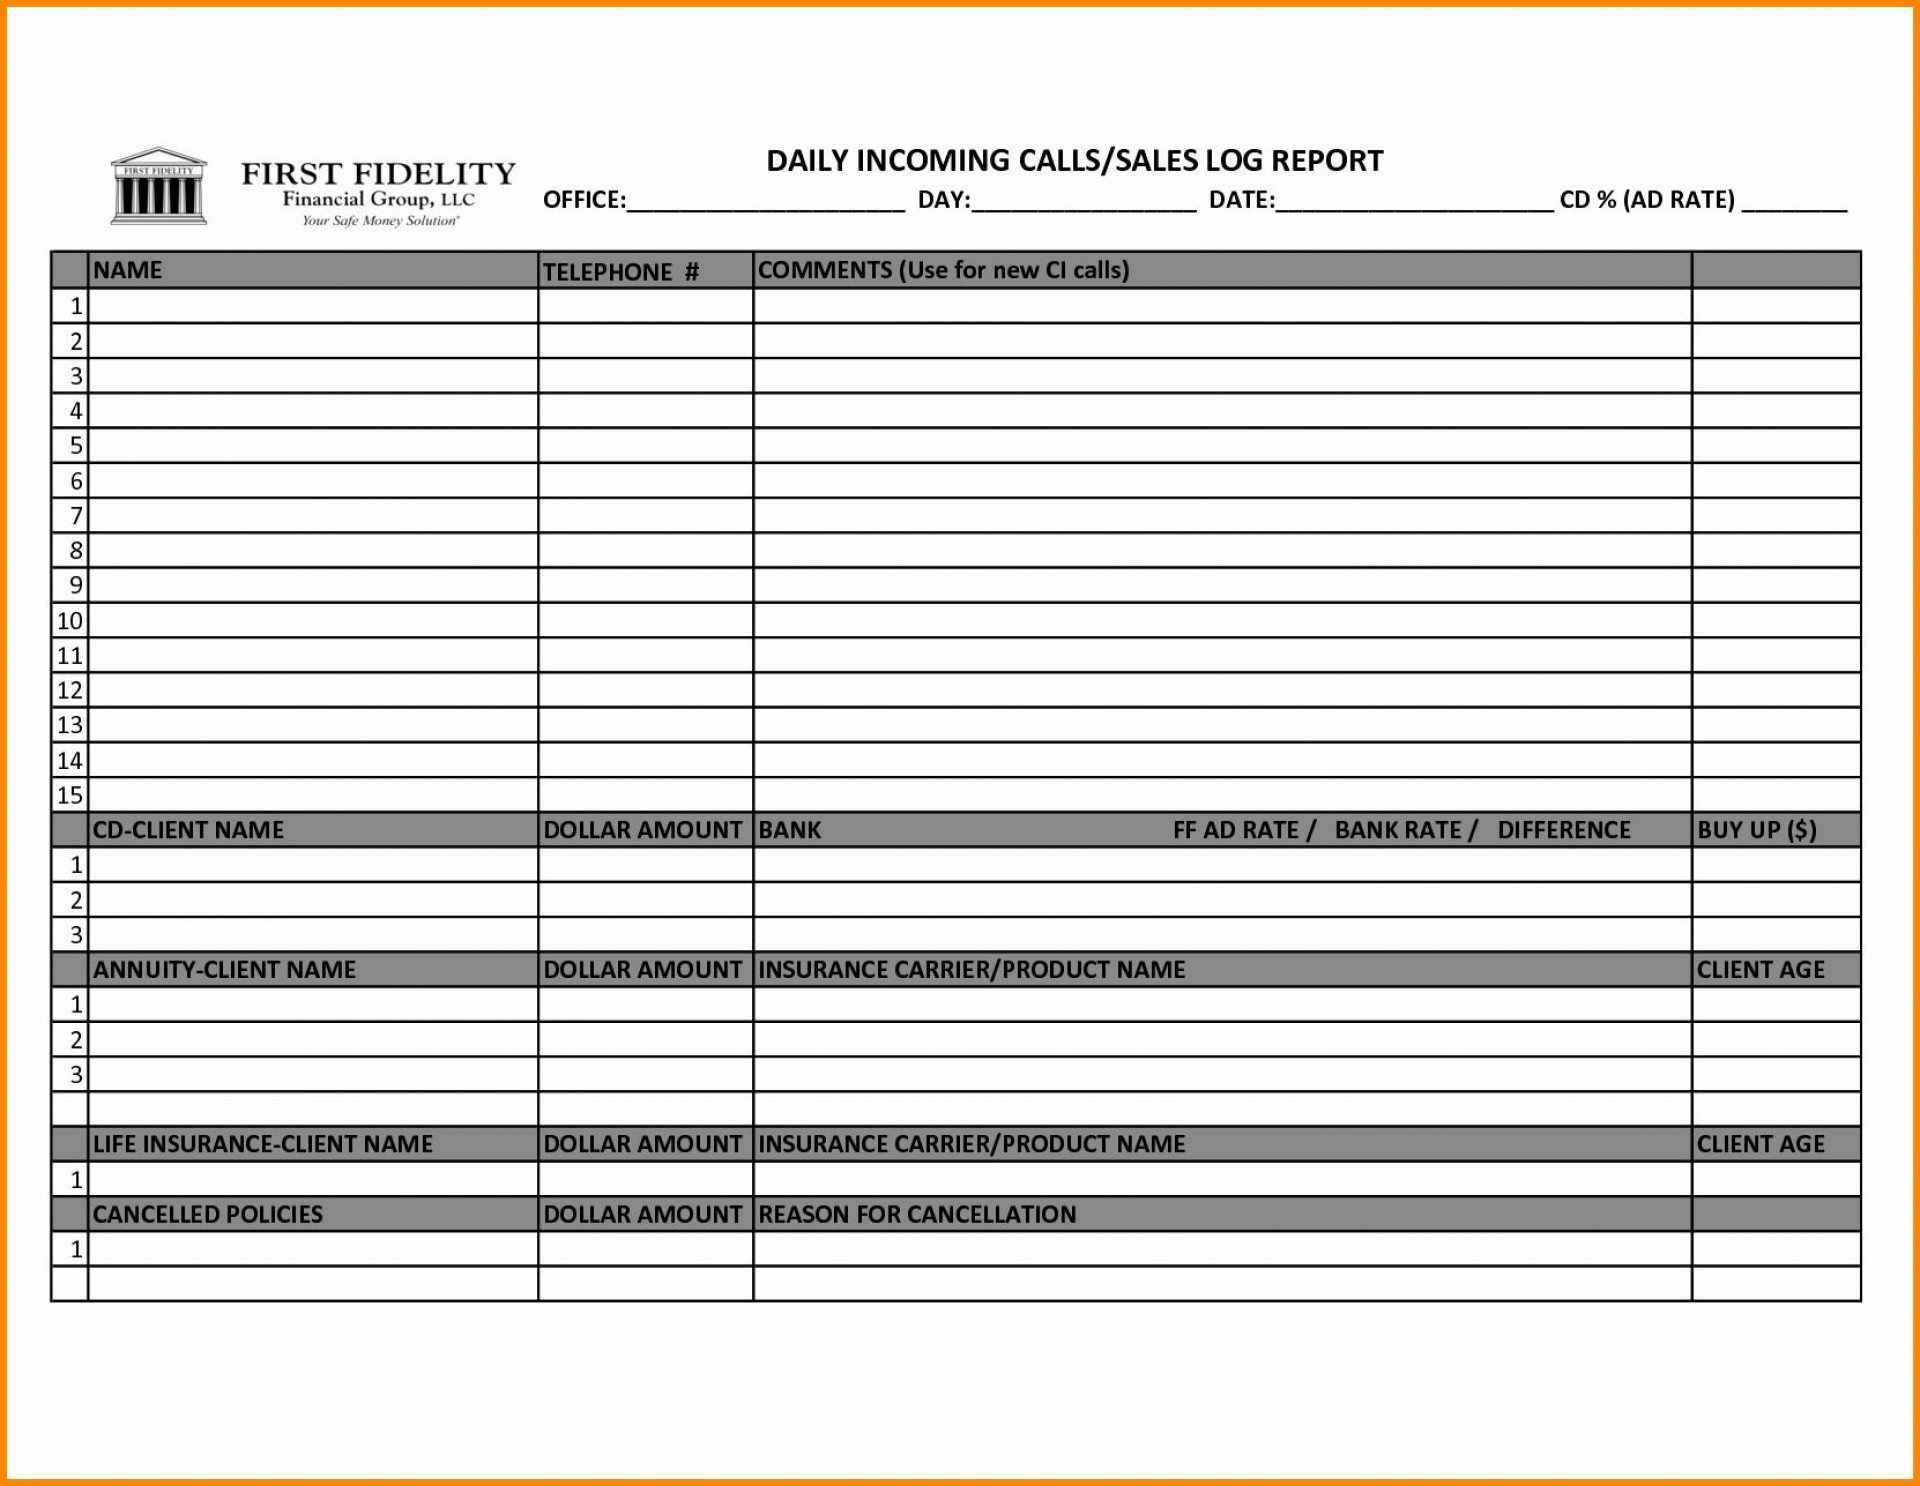 004 Shocking Sale Call Report Template Picture  Excel Free1920